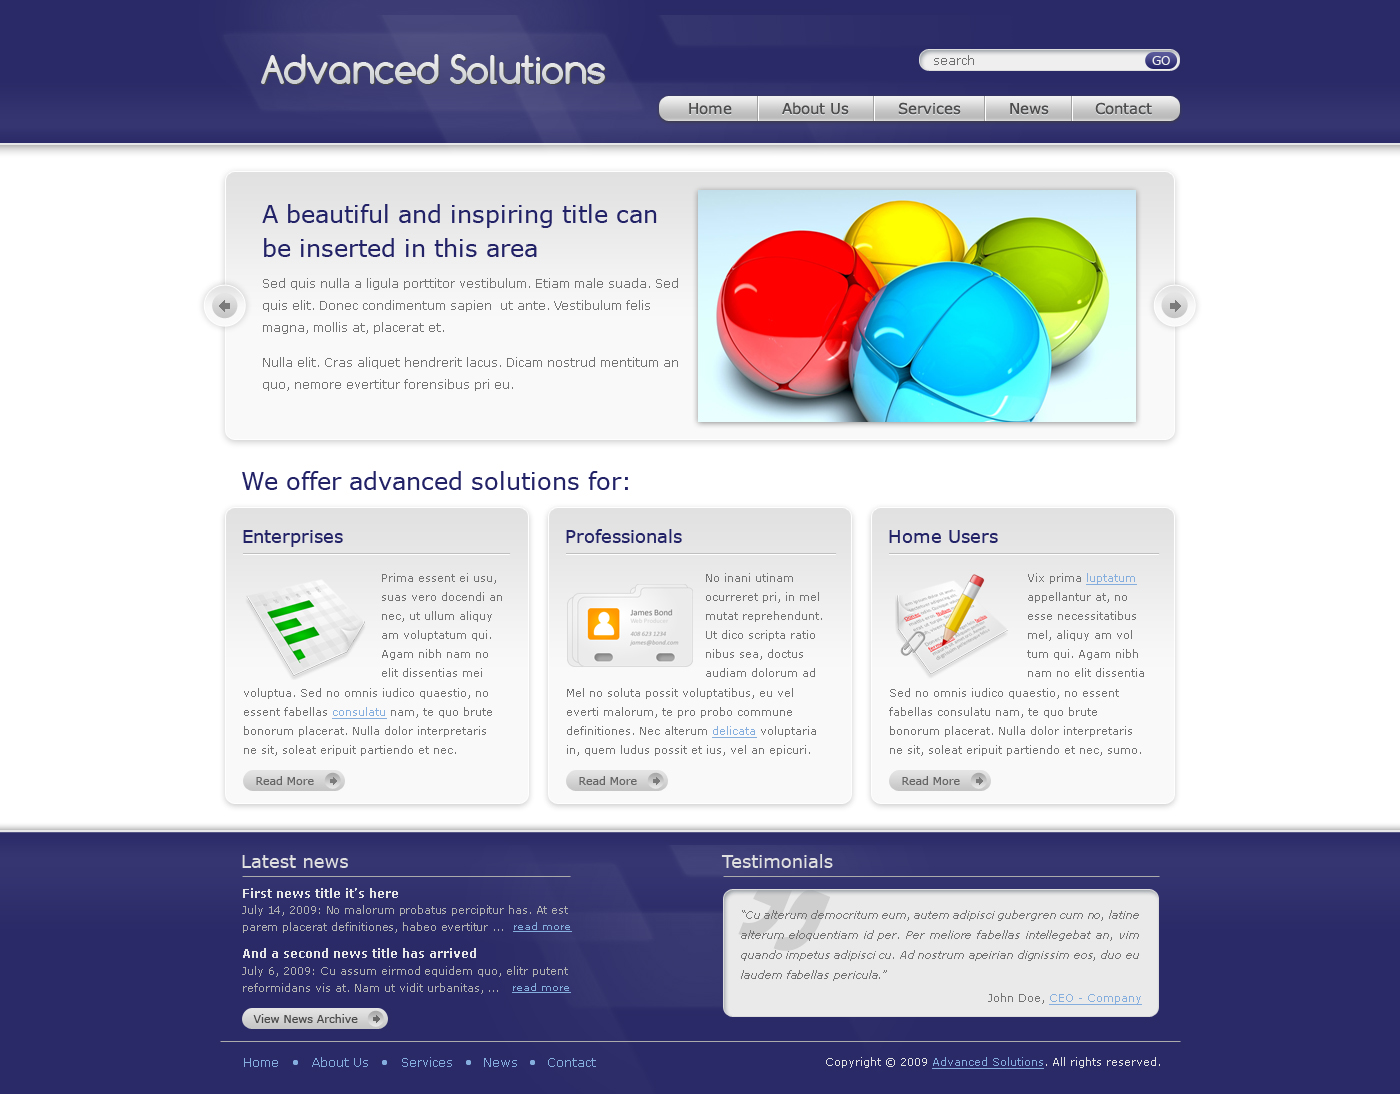 Advanced Solutions - Professional Business Theme - Here we have the home page of Advanced Solutions template - blue theme version. It contains a slider, 3 boxes and a specially designed footer.